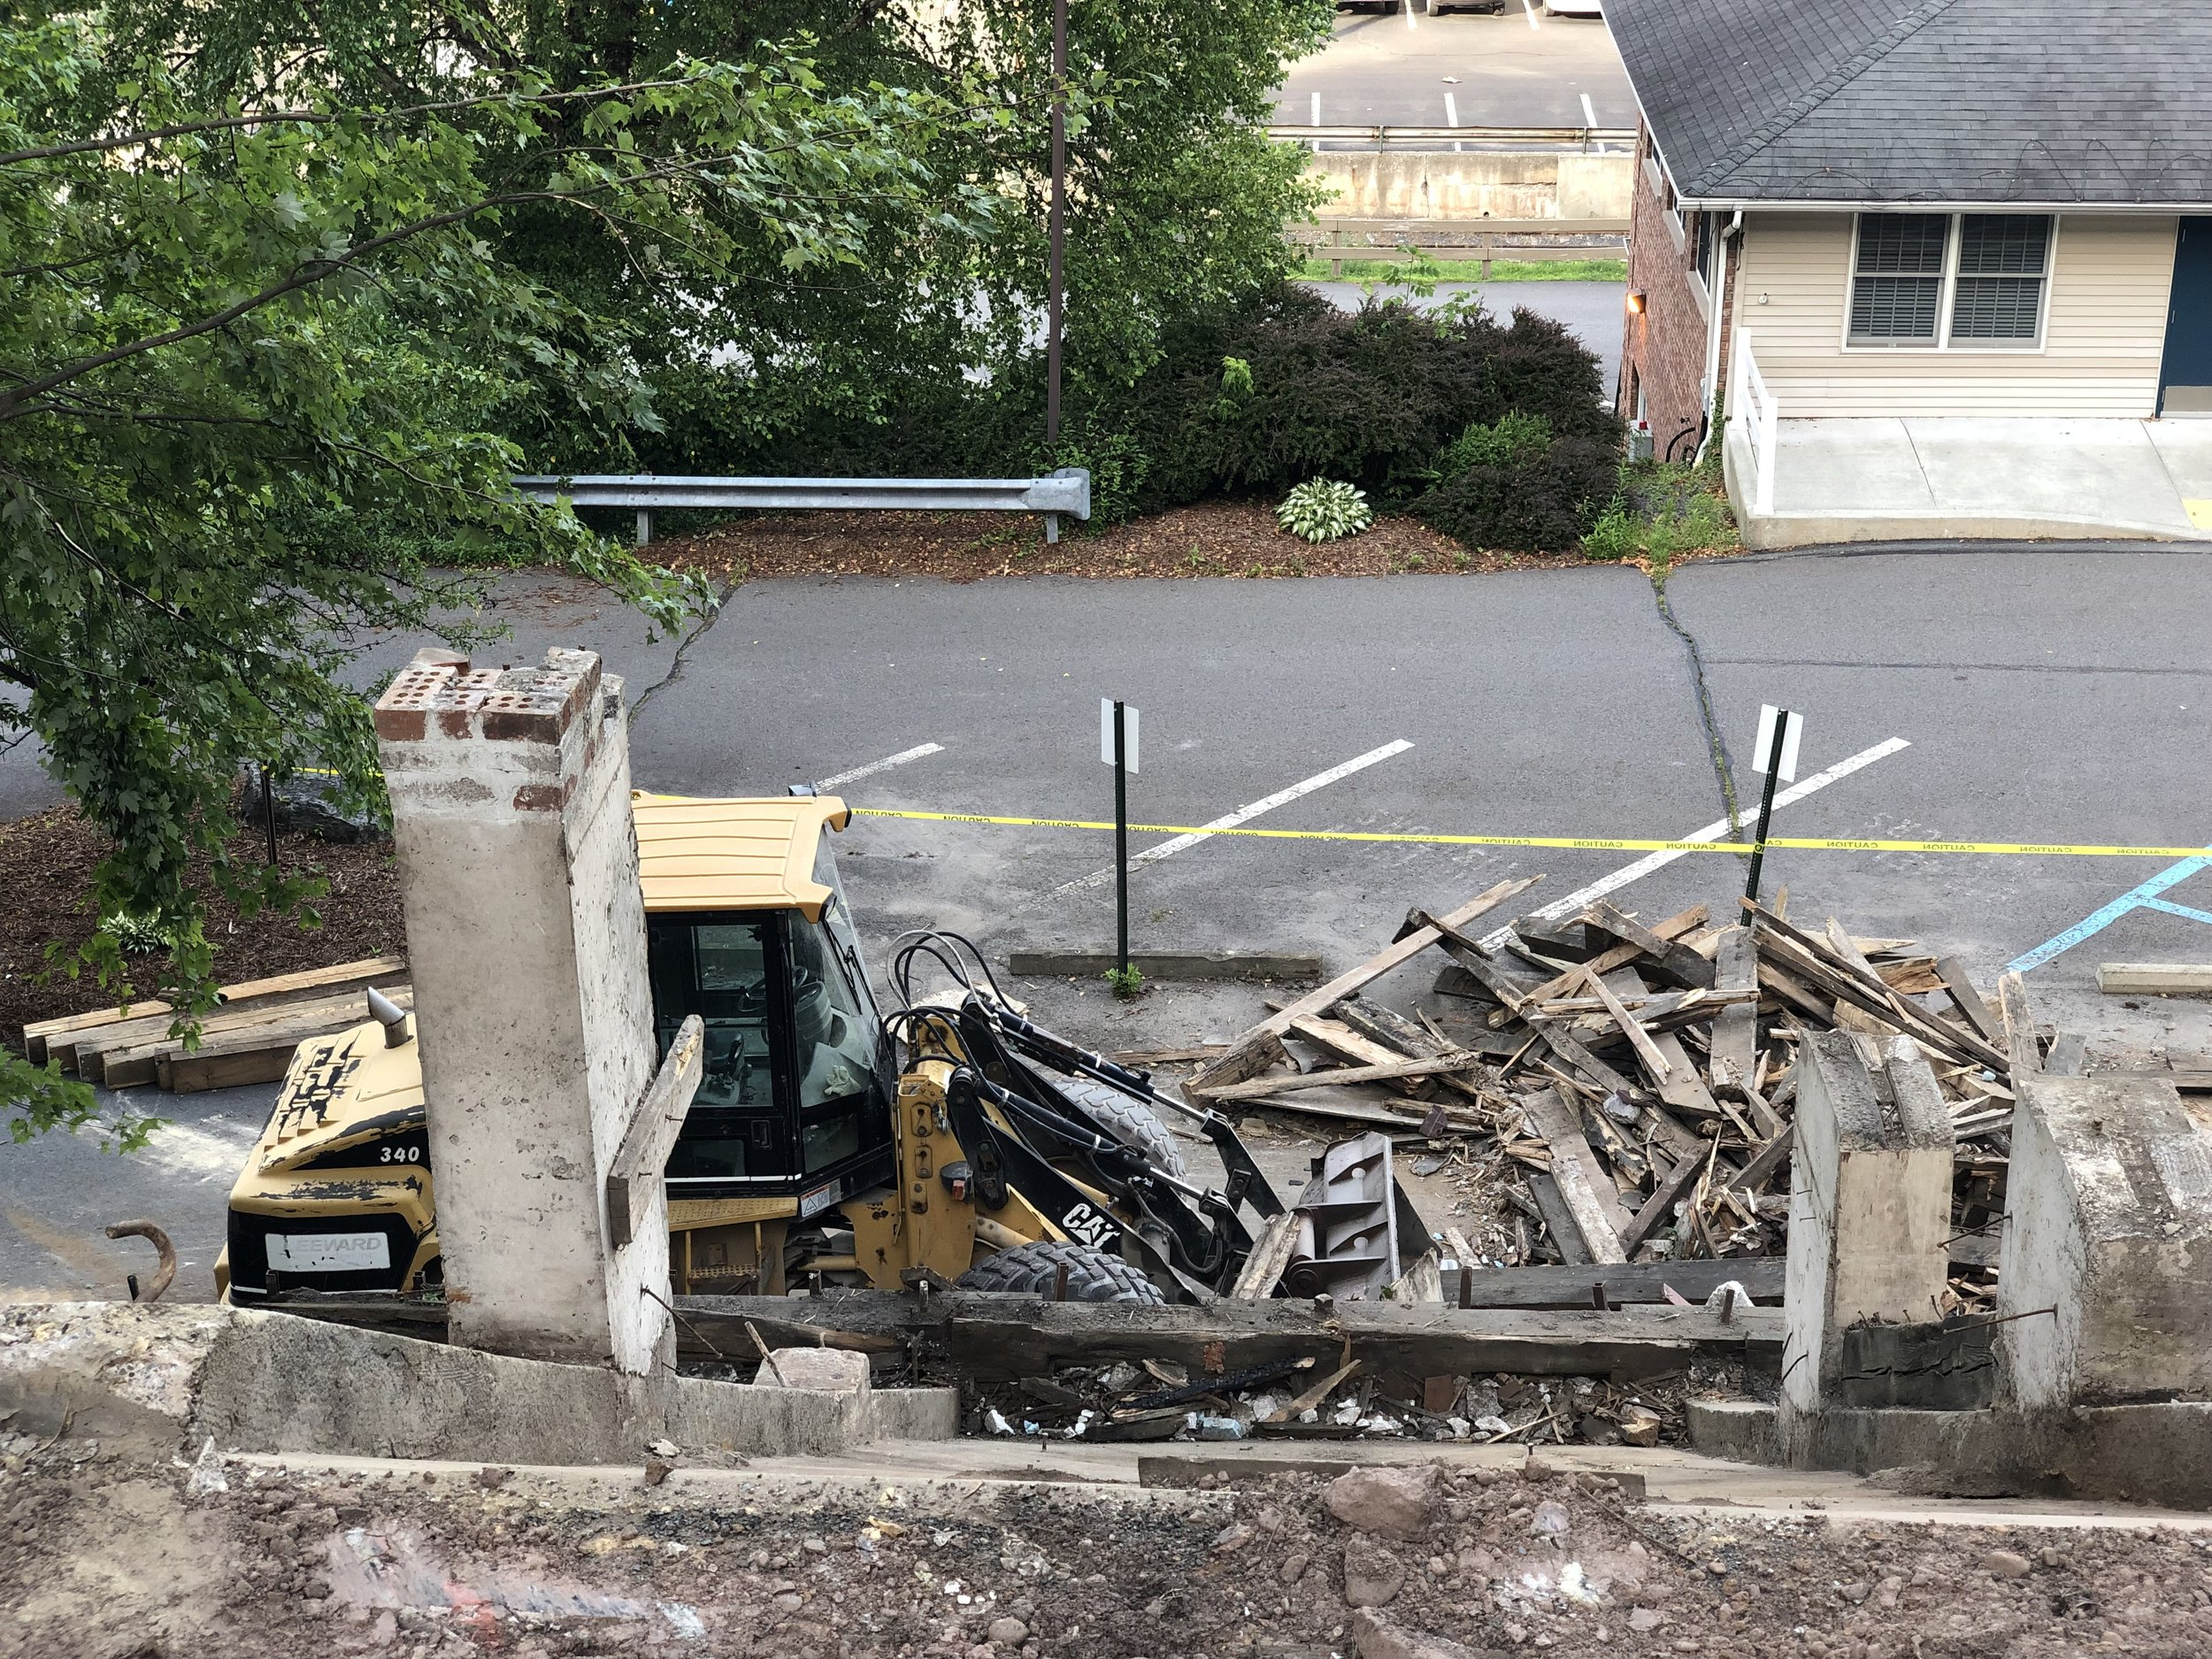 After Demolition - July, 2019